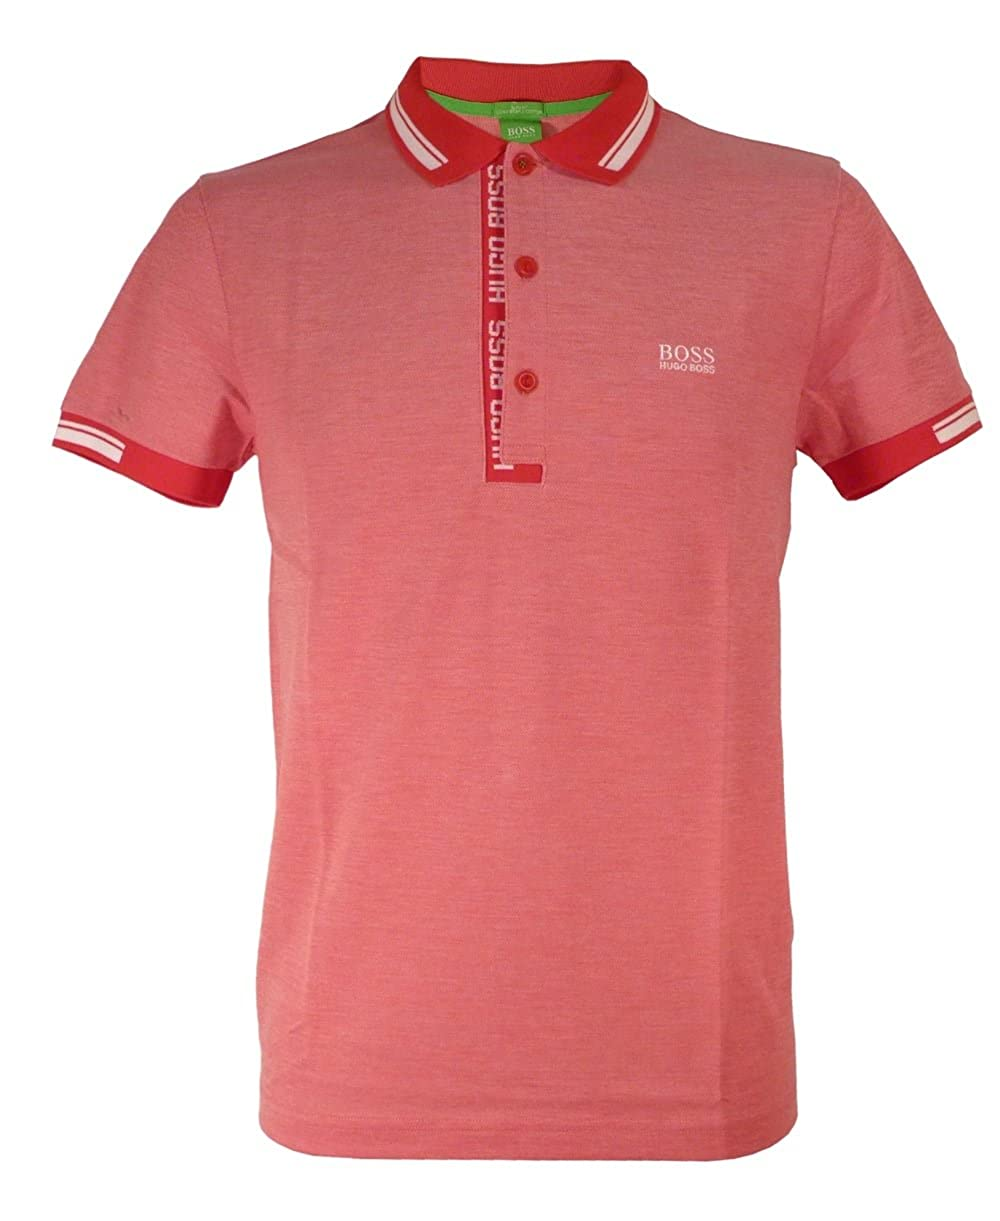 848981265 HUGO BOSS GREEN Men's PAULE 4 S/S POLO SHIRT (Red/White/Silver) - XL:  Amazon.ca: Clothing & Accessories